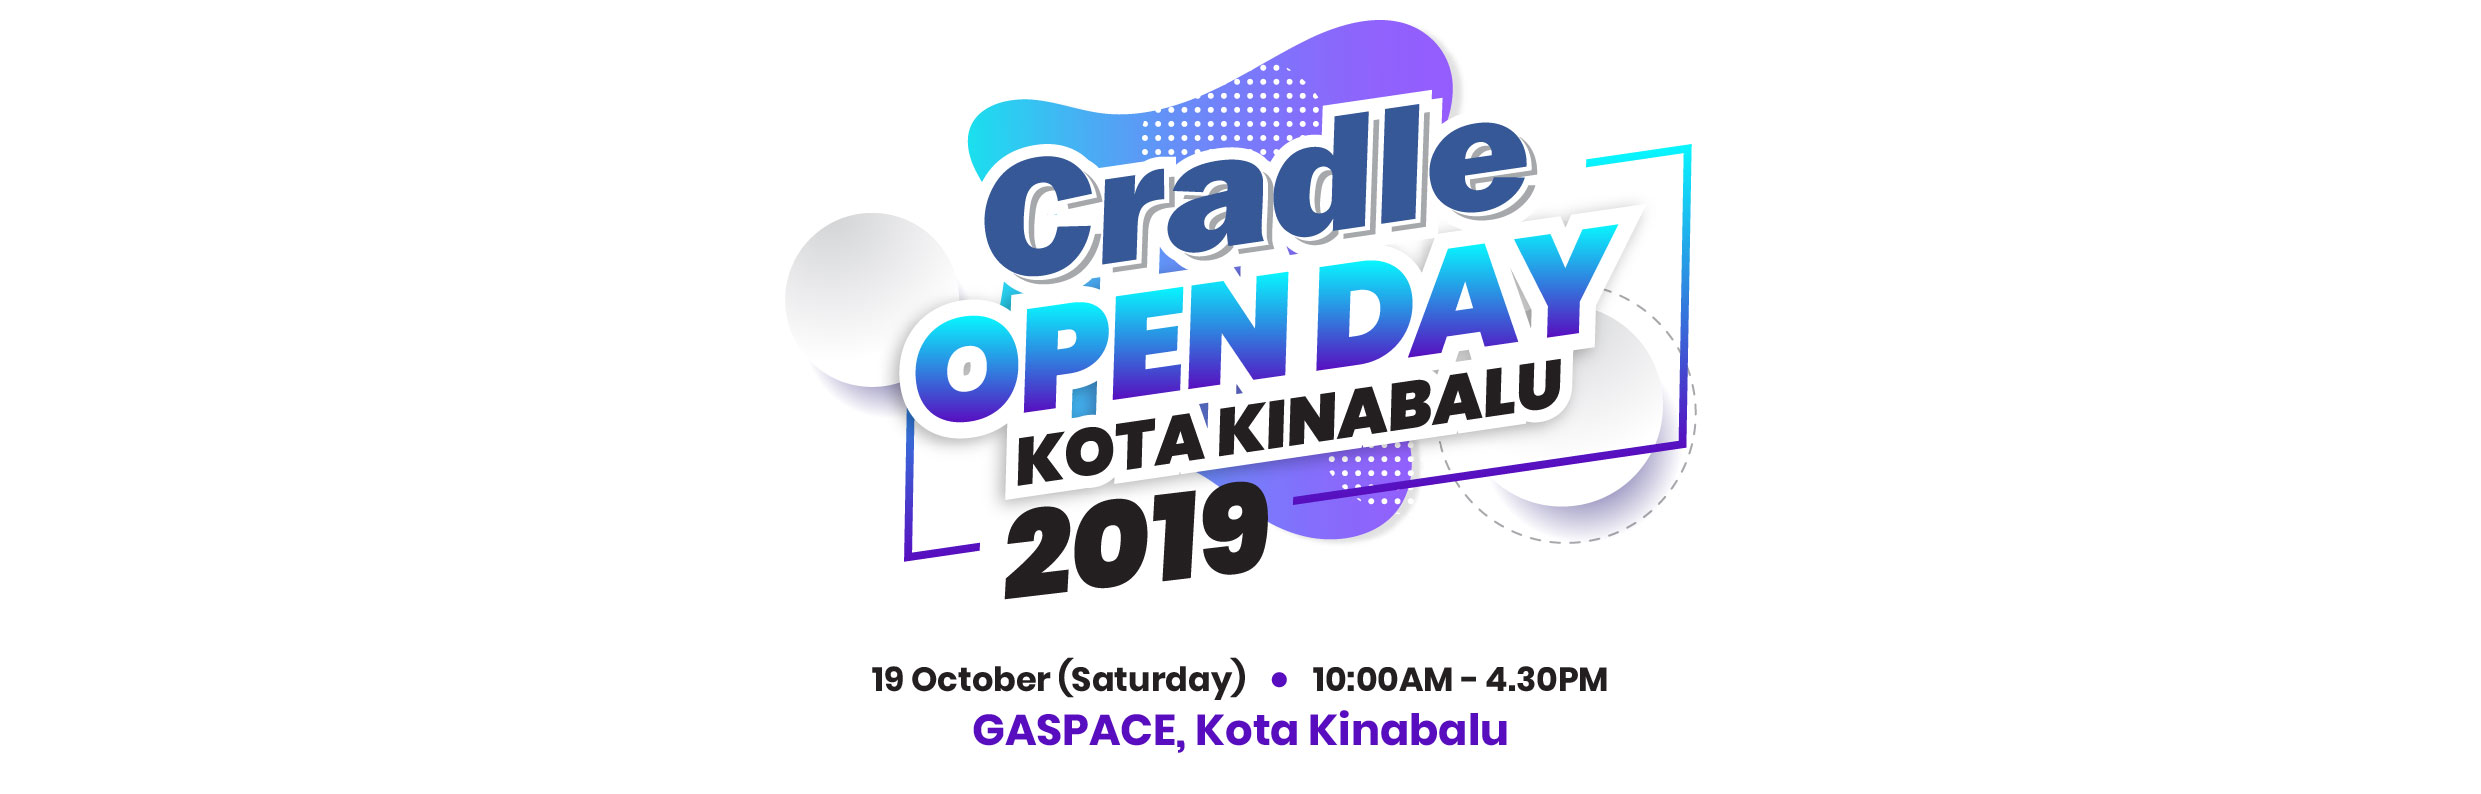 Cradle Open Day